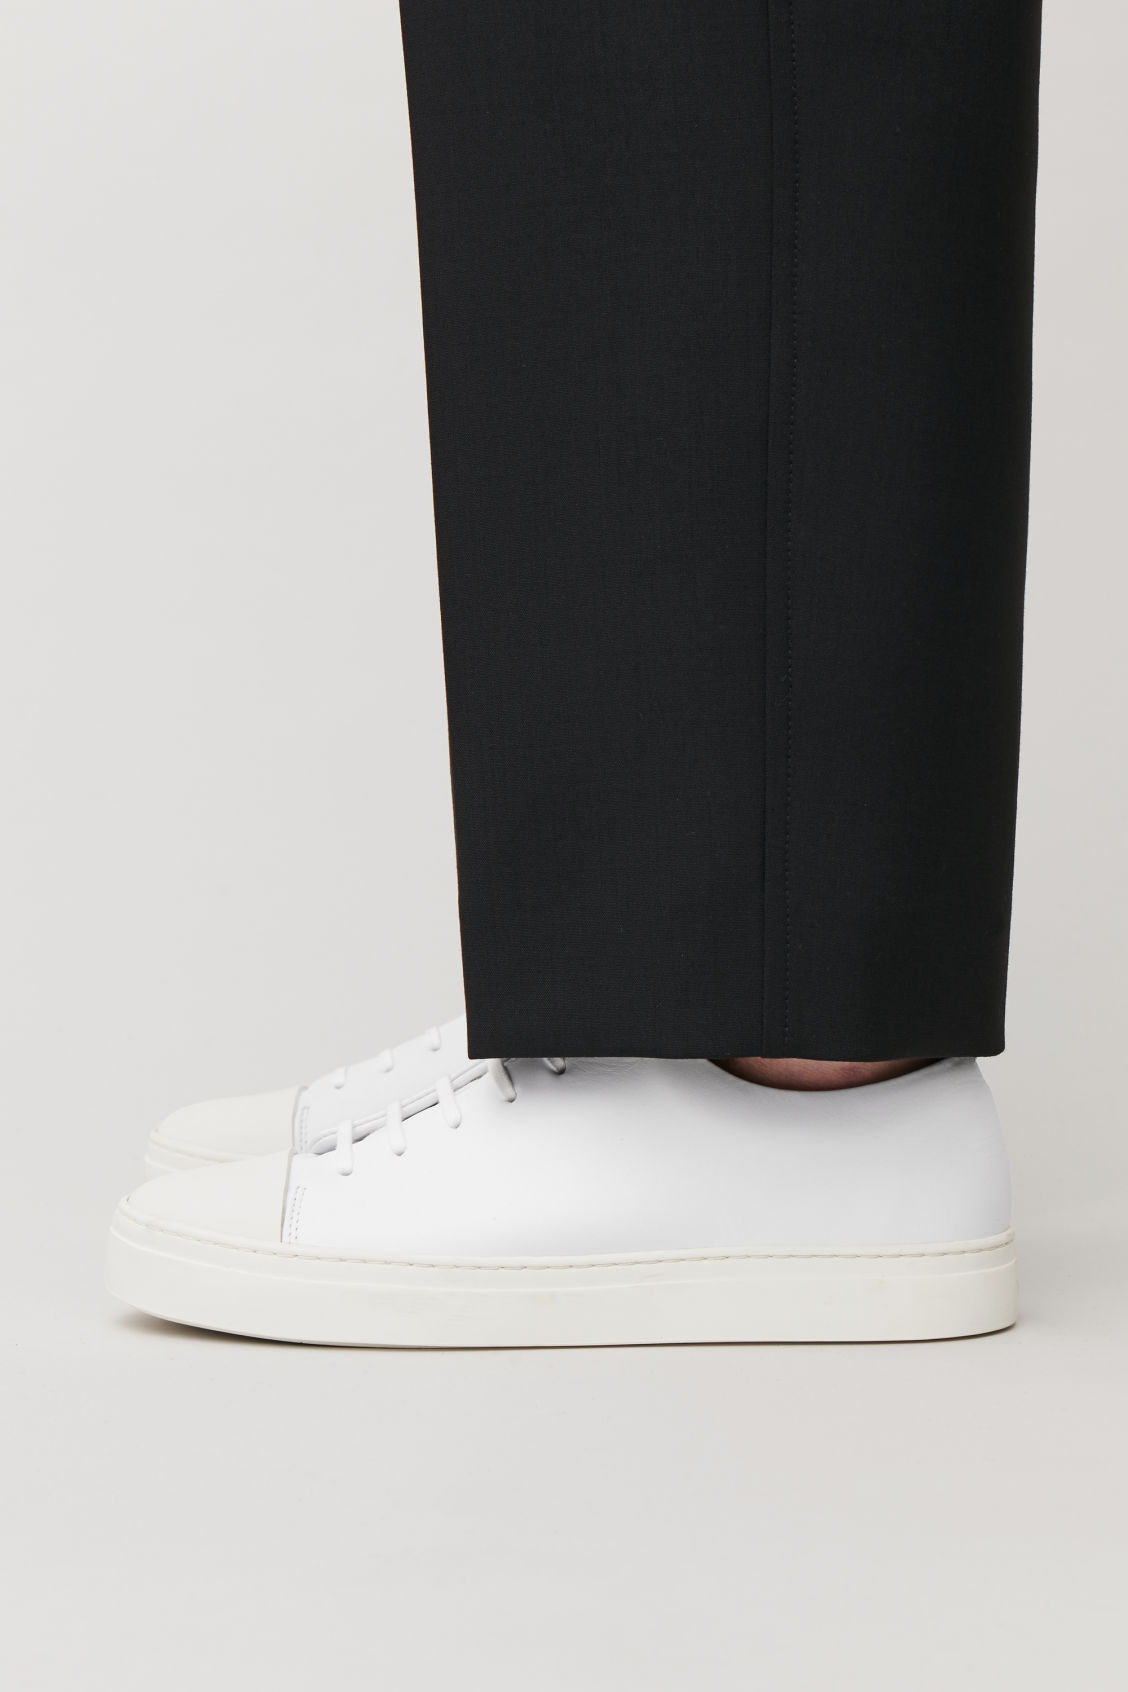 Detailed image of Cos  rubber-detailed leather sneakers in white